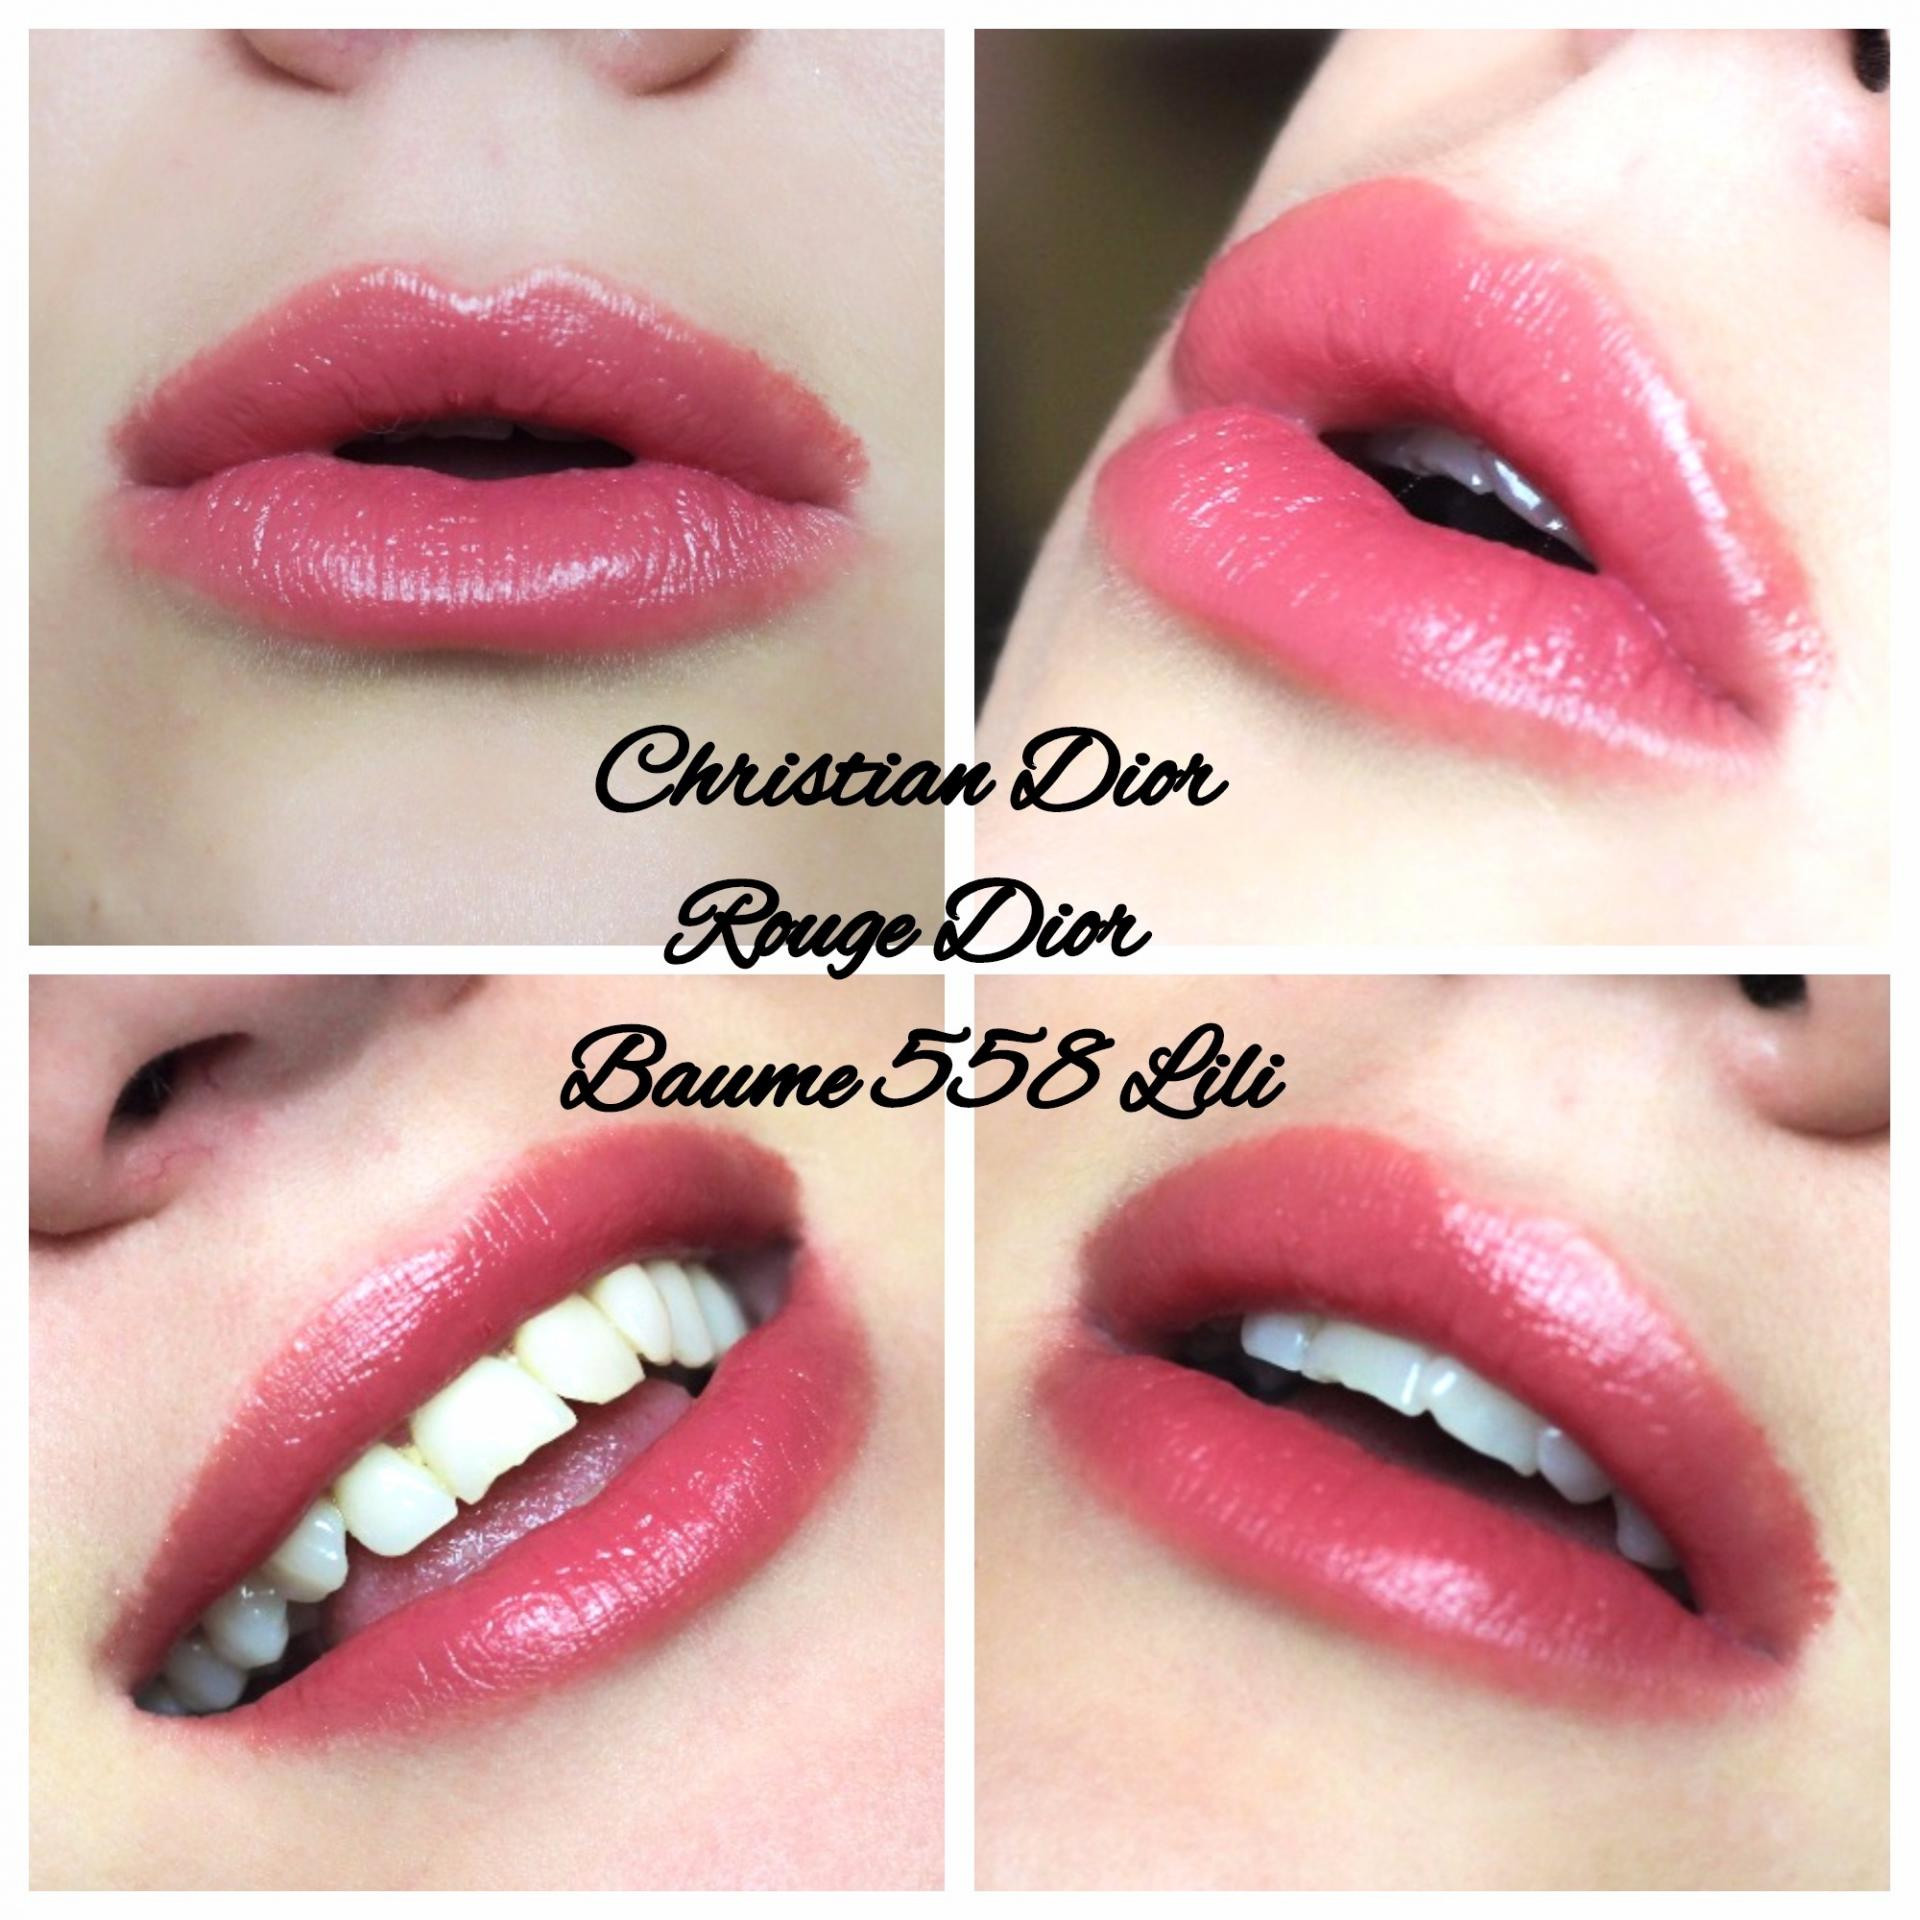 Dior Beauty at World Duty Free Rouge Dior Baume